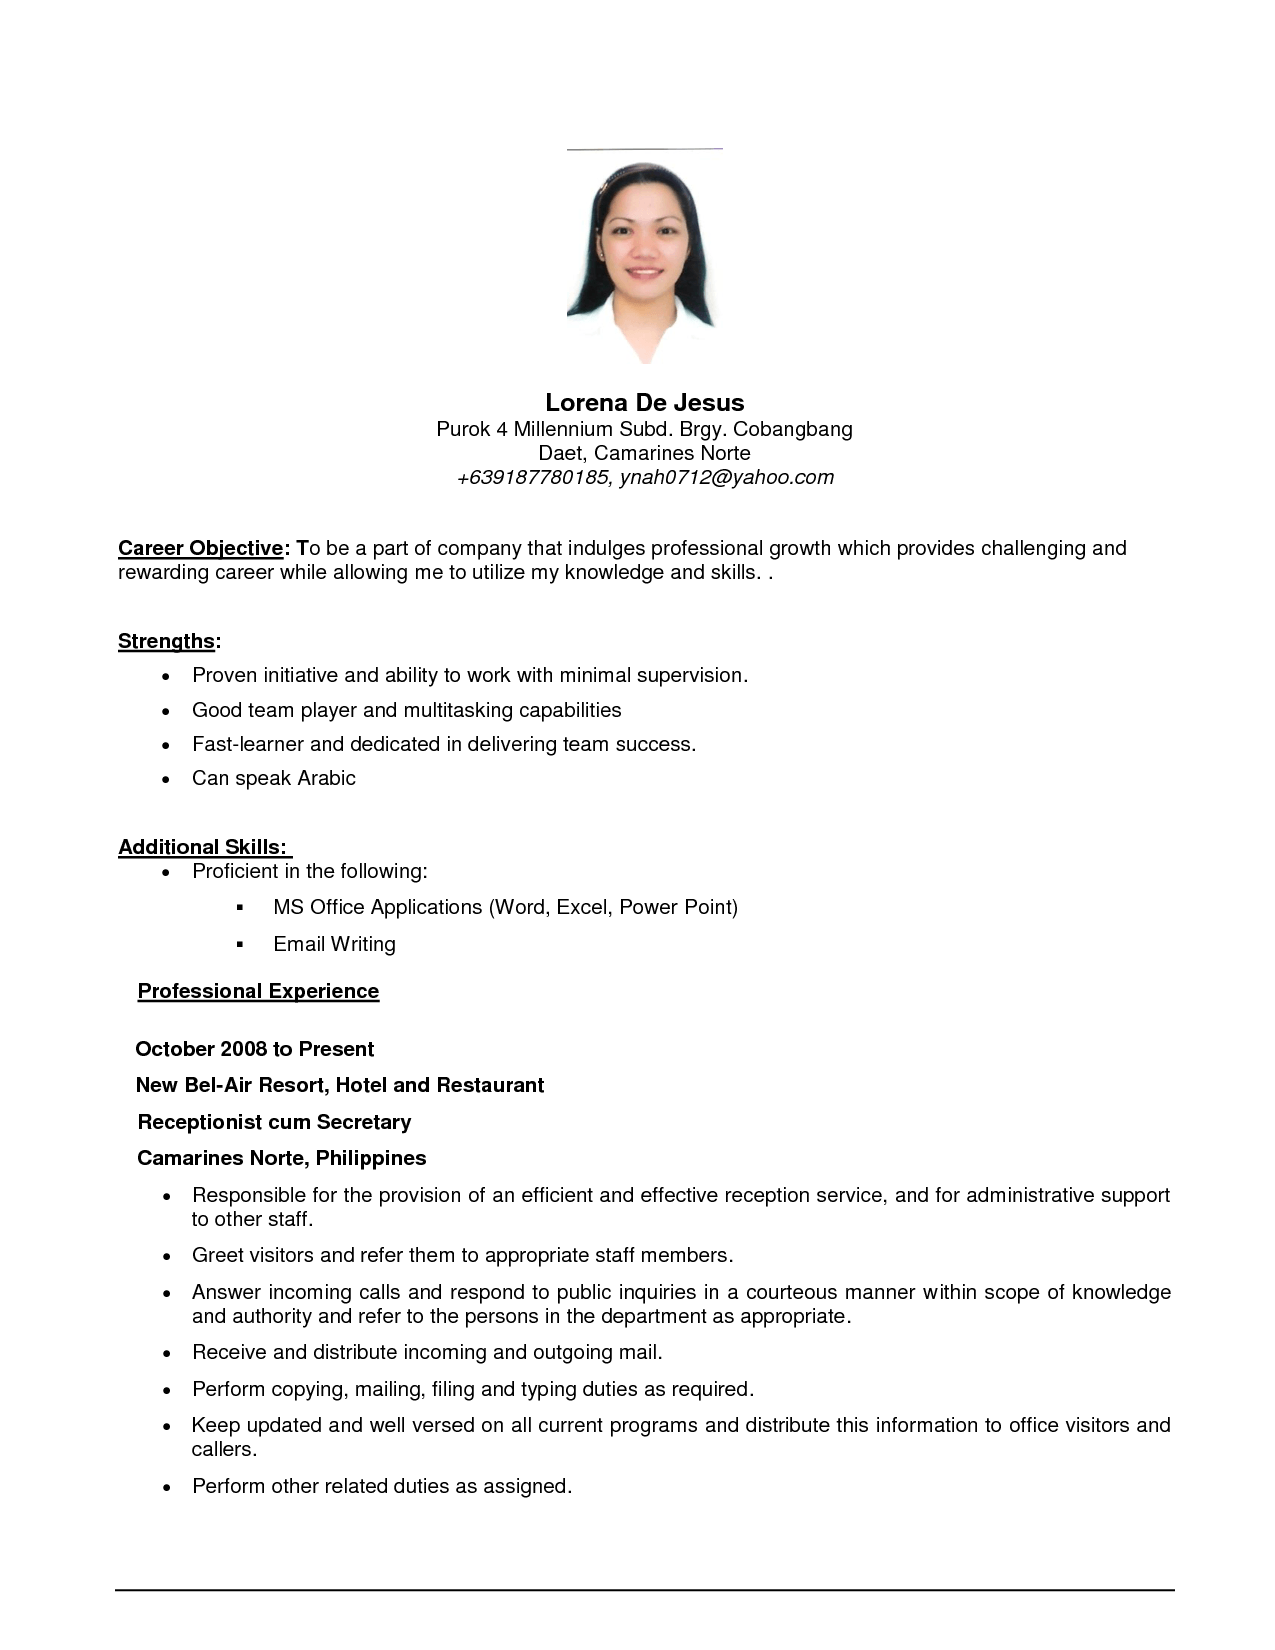 Career Objective Statement Examples Magnificent Resume Examples Job Objective  Pinterest  Resume Examples Create .